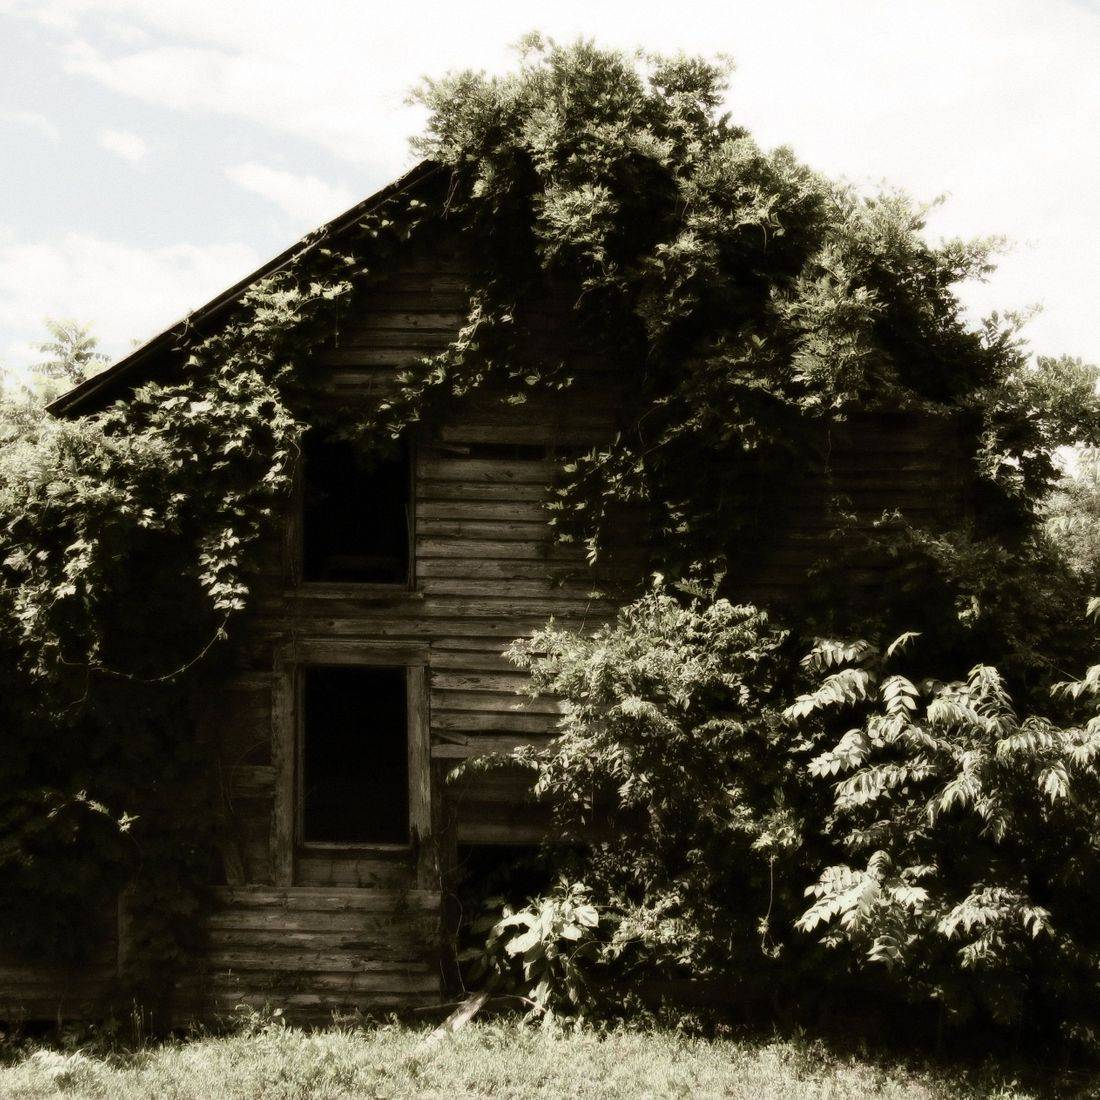 Countryside, Barn, Building, Old, Vintage, Outdoors, Trees, Farm